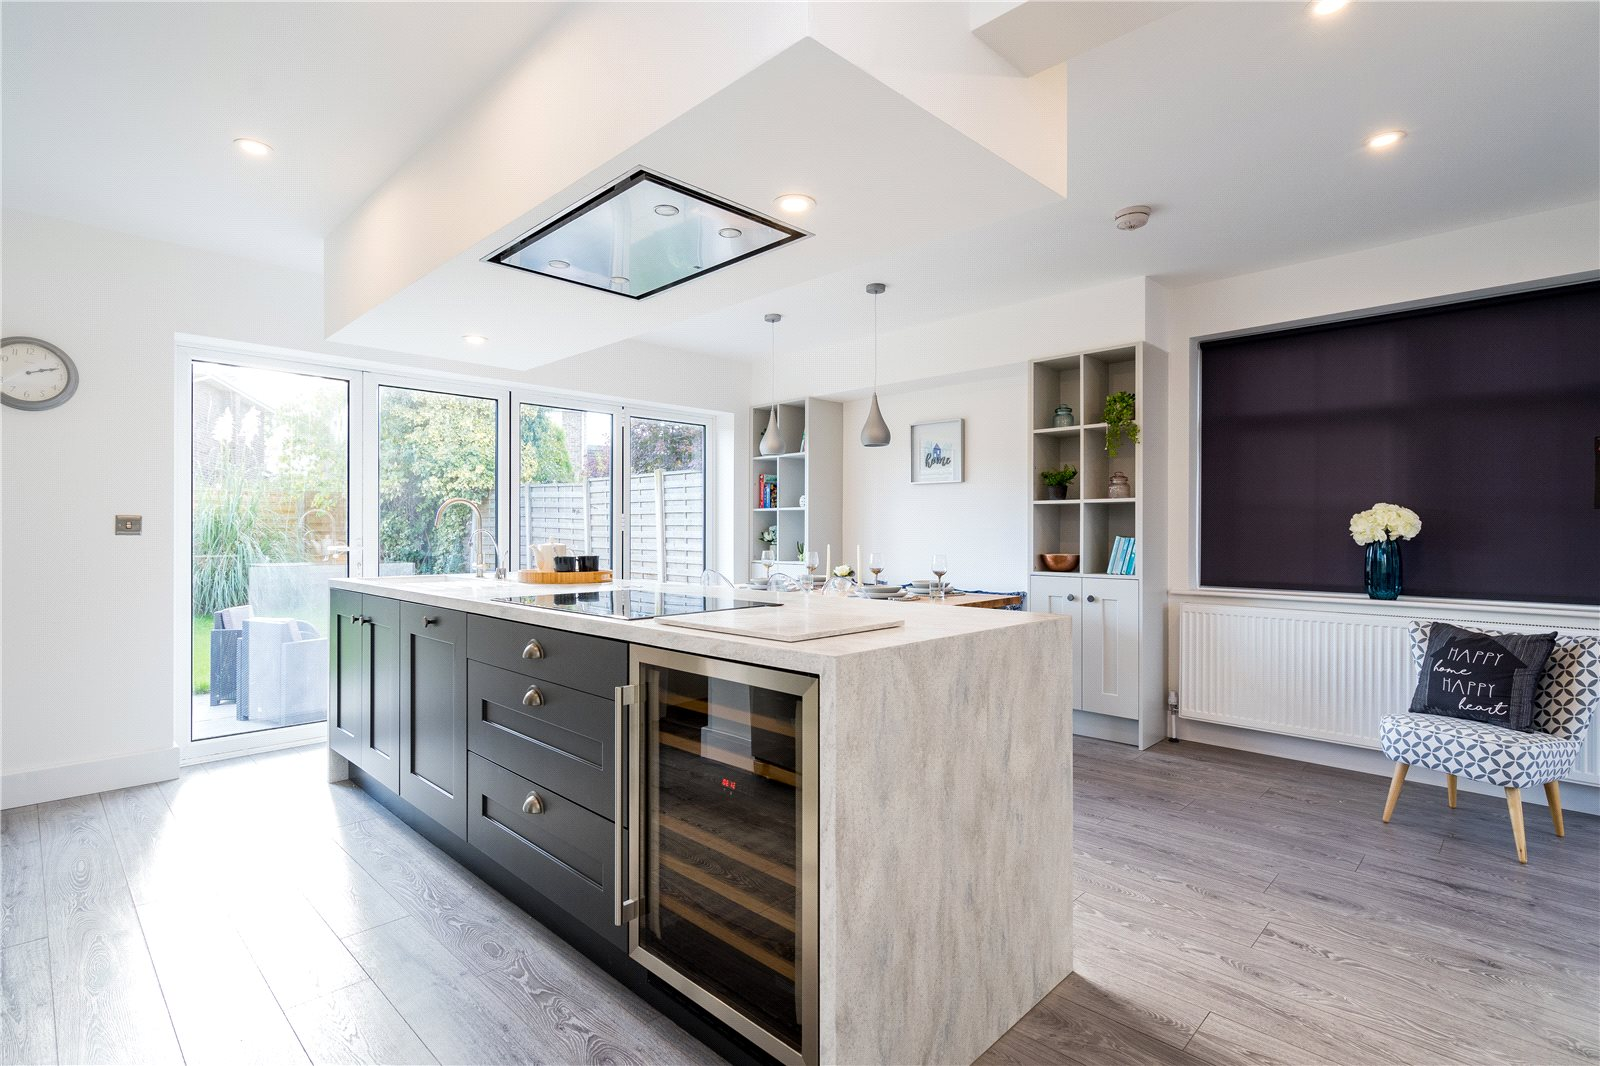 Property for sale in Sandal, interior modern fitted and spacious kitchen